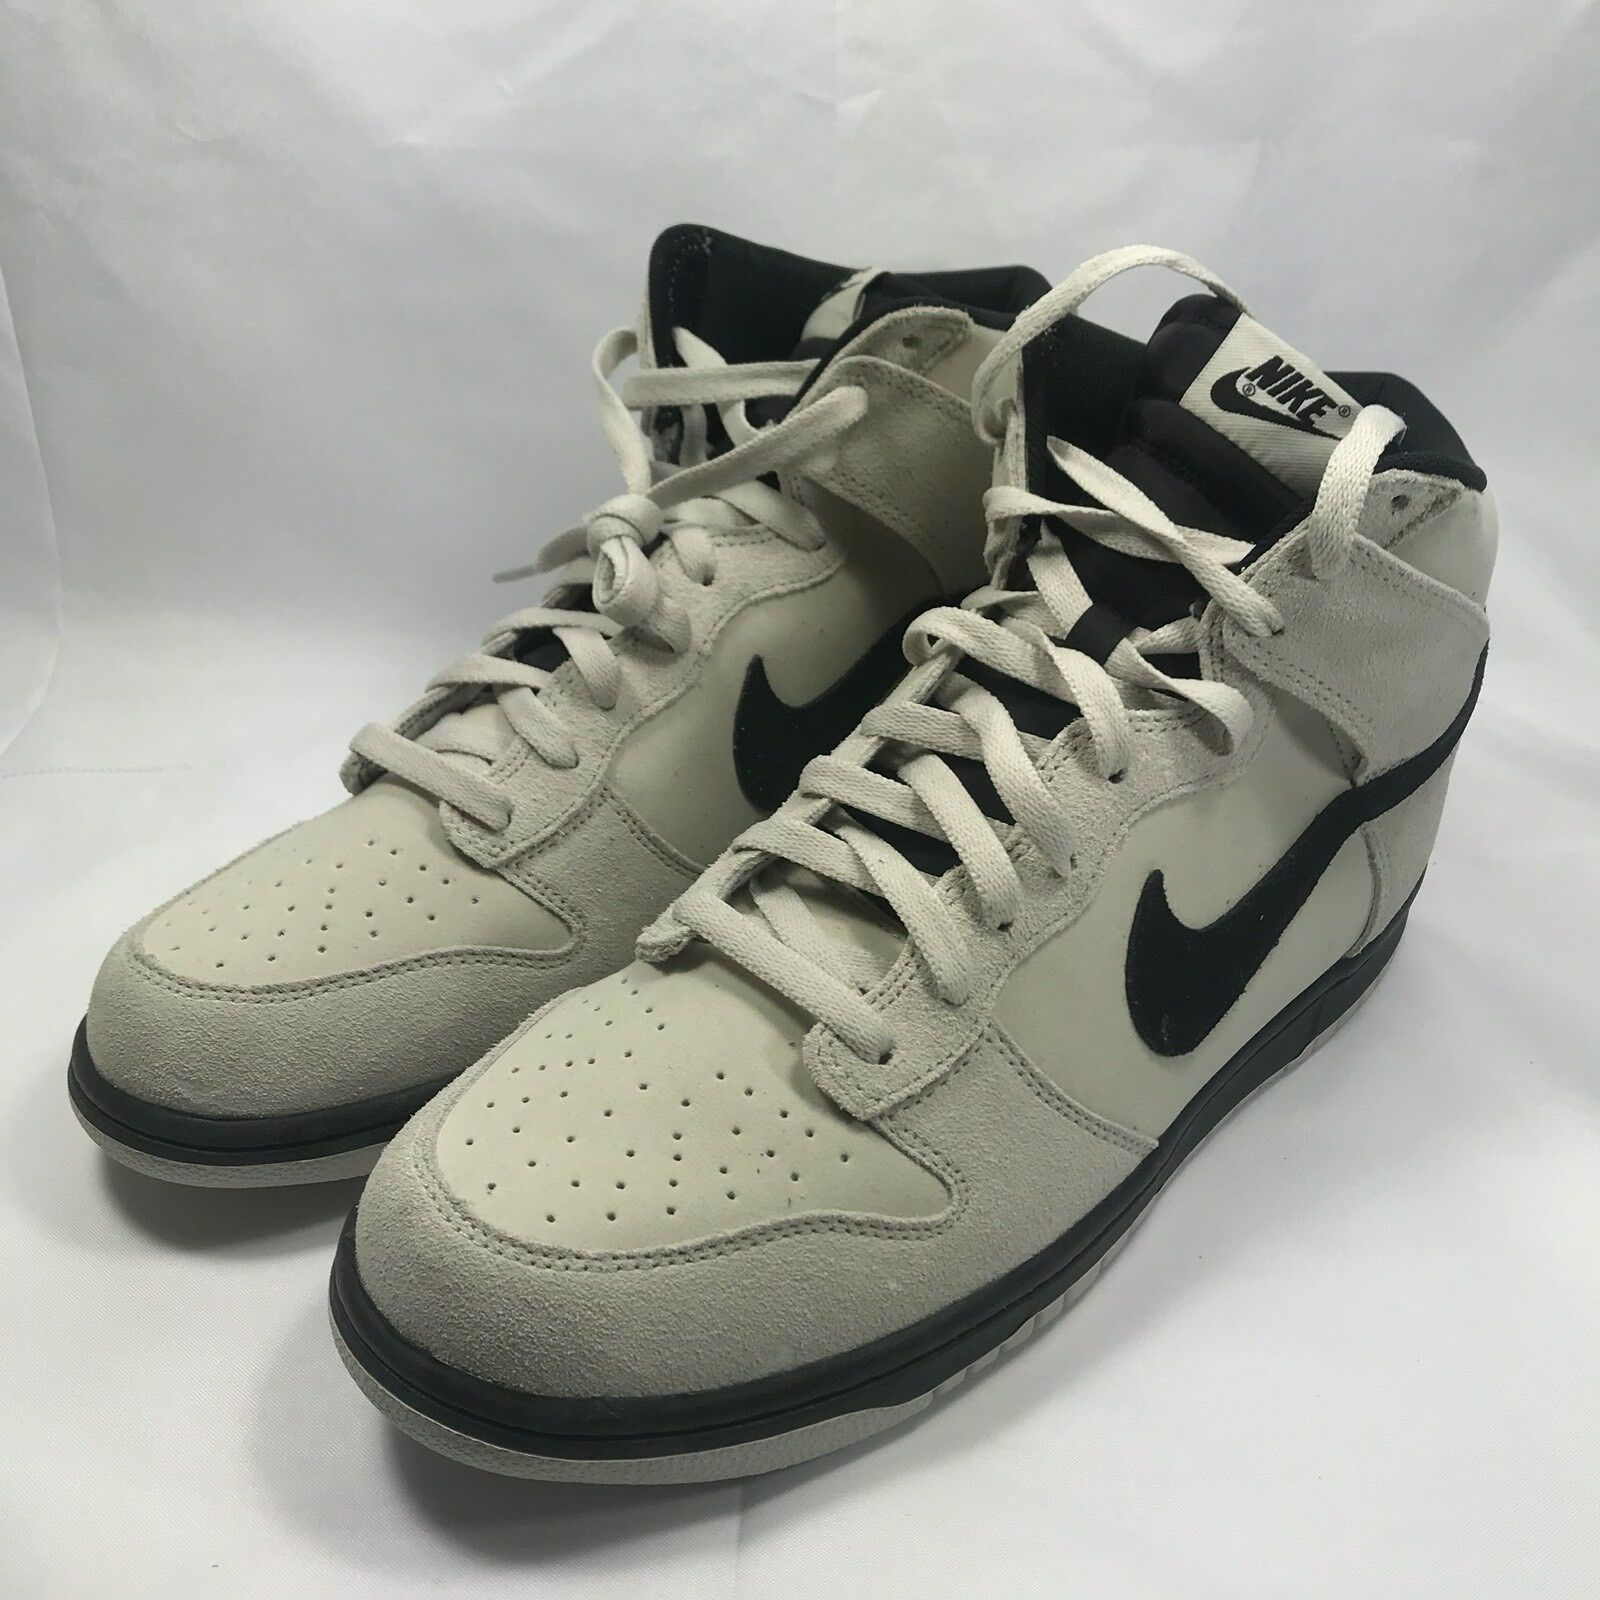 air force dunk one - basket nike dunk force - rétro - lightbone - 904233-002 - sz-11 5dbf91